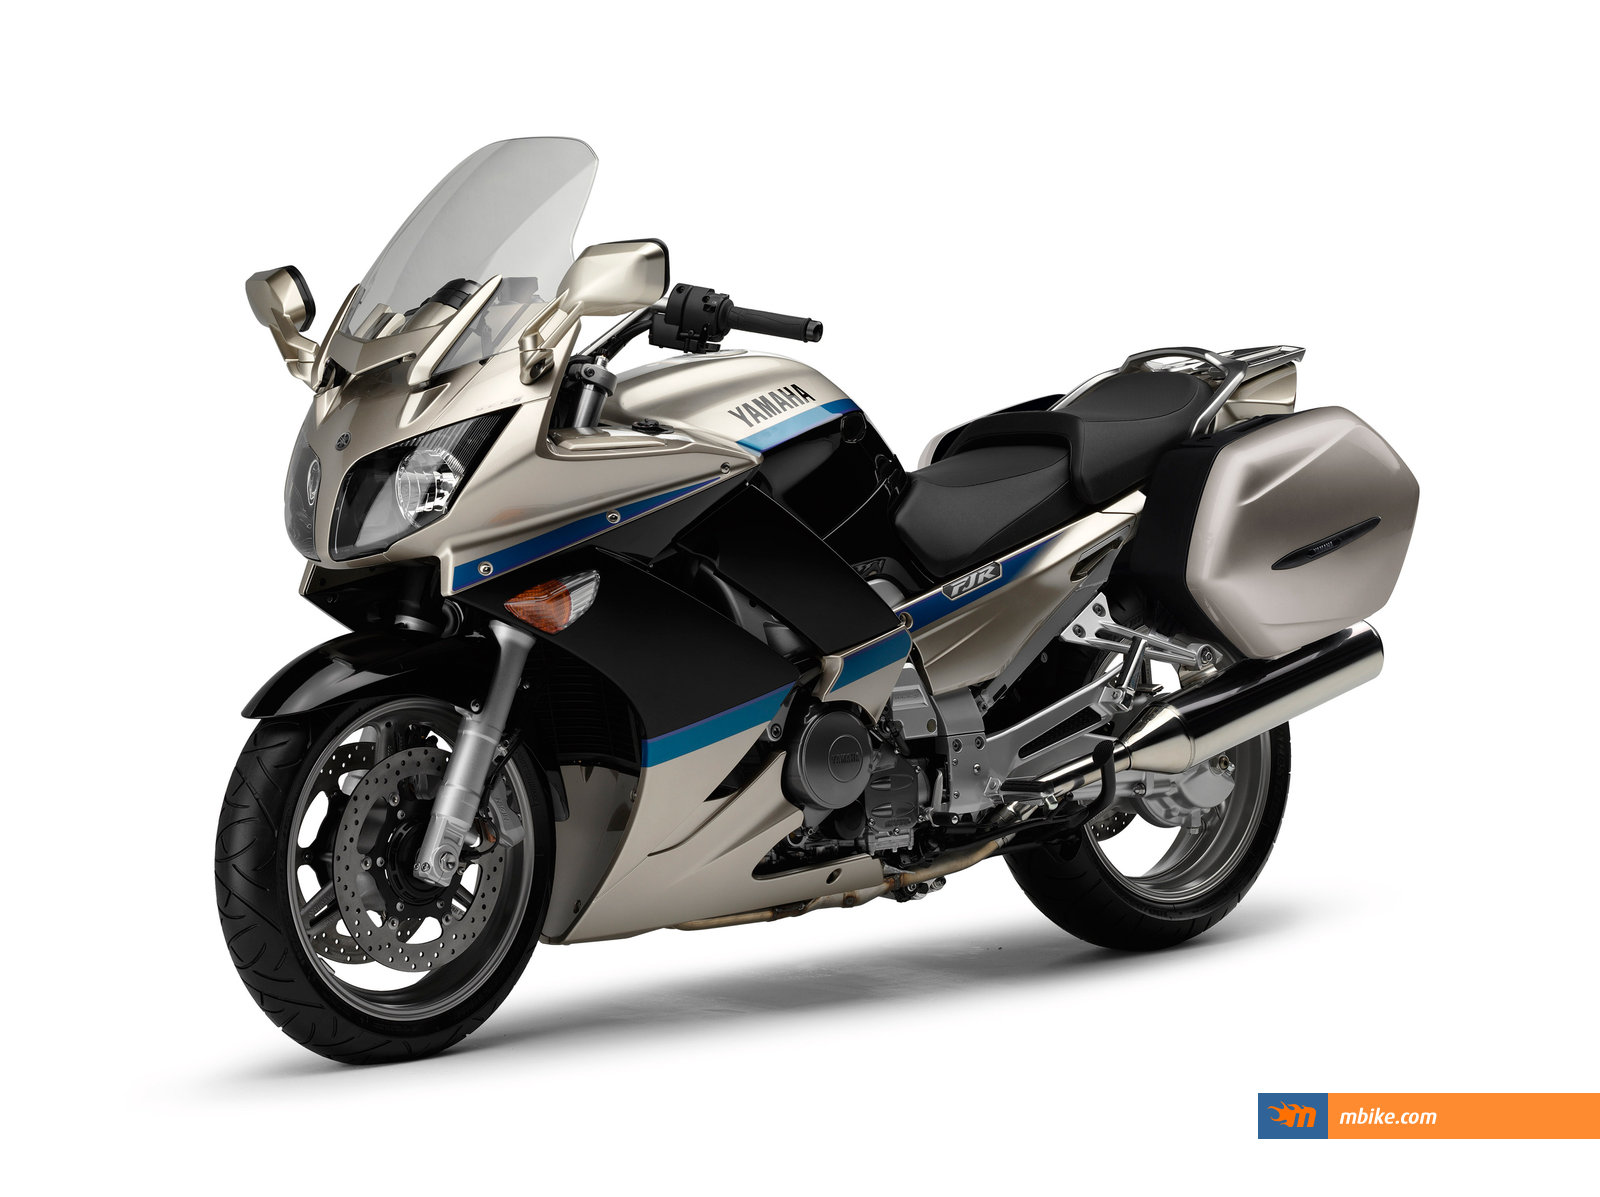 Yamaha FJR 1300 AS 2009 #6